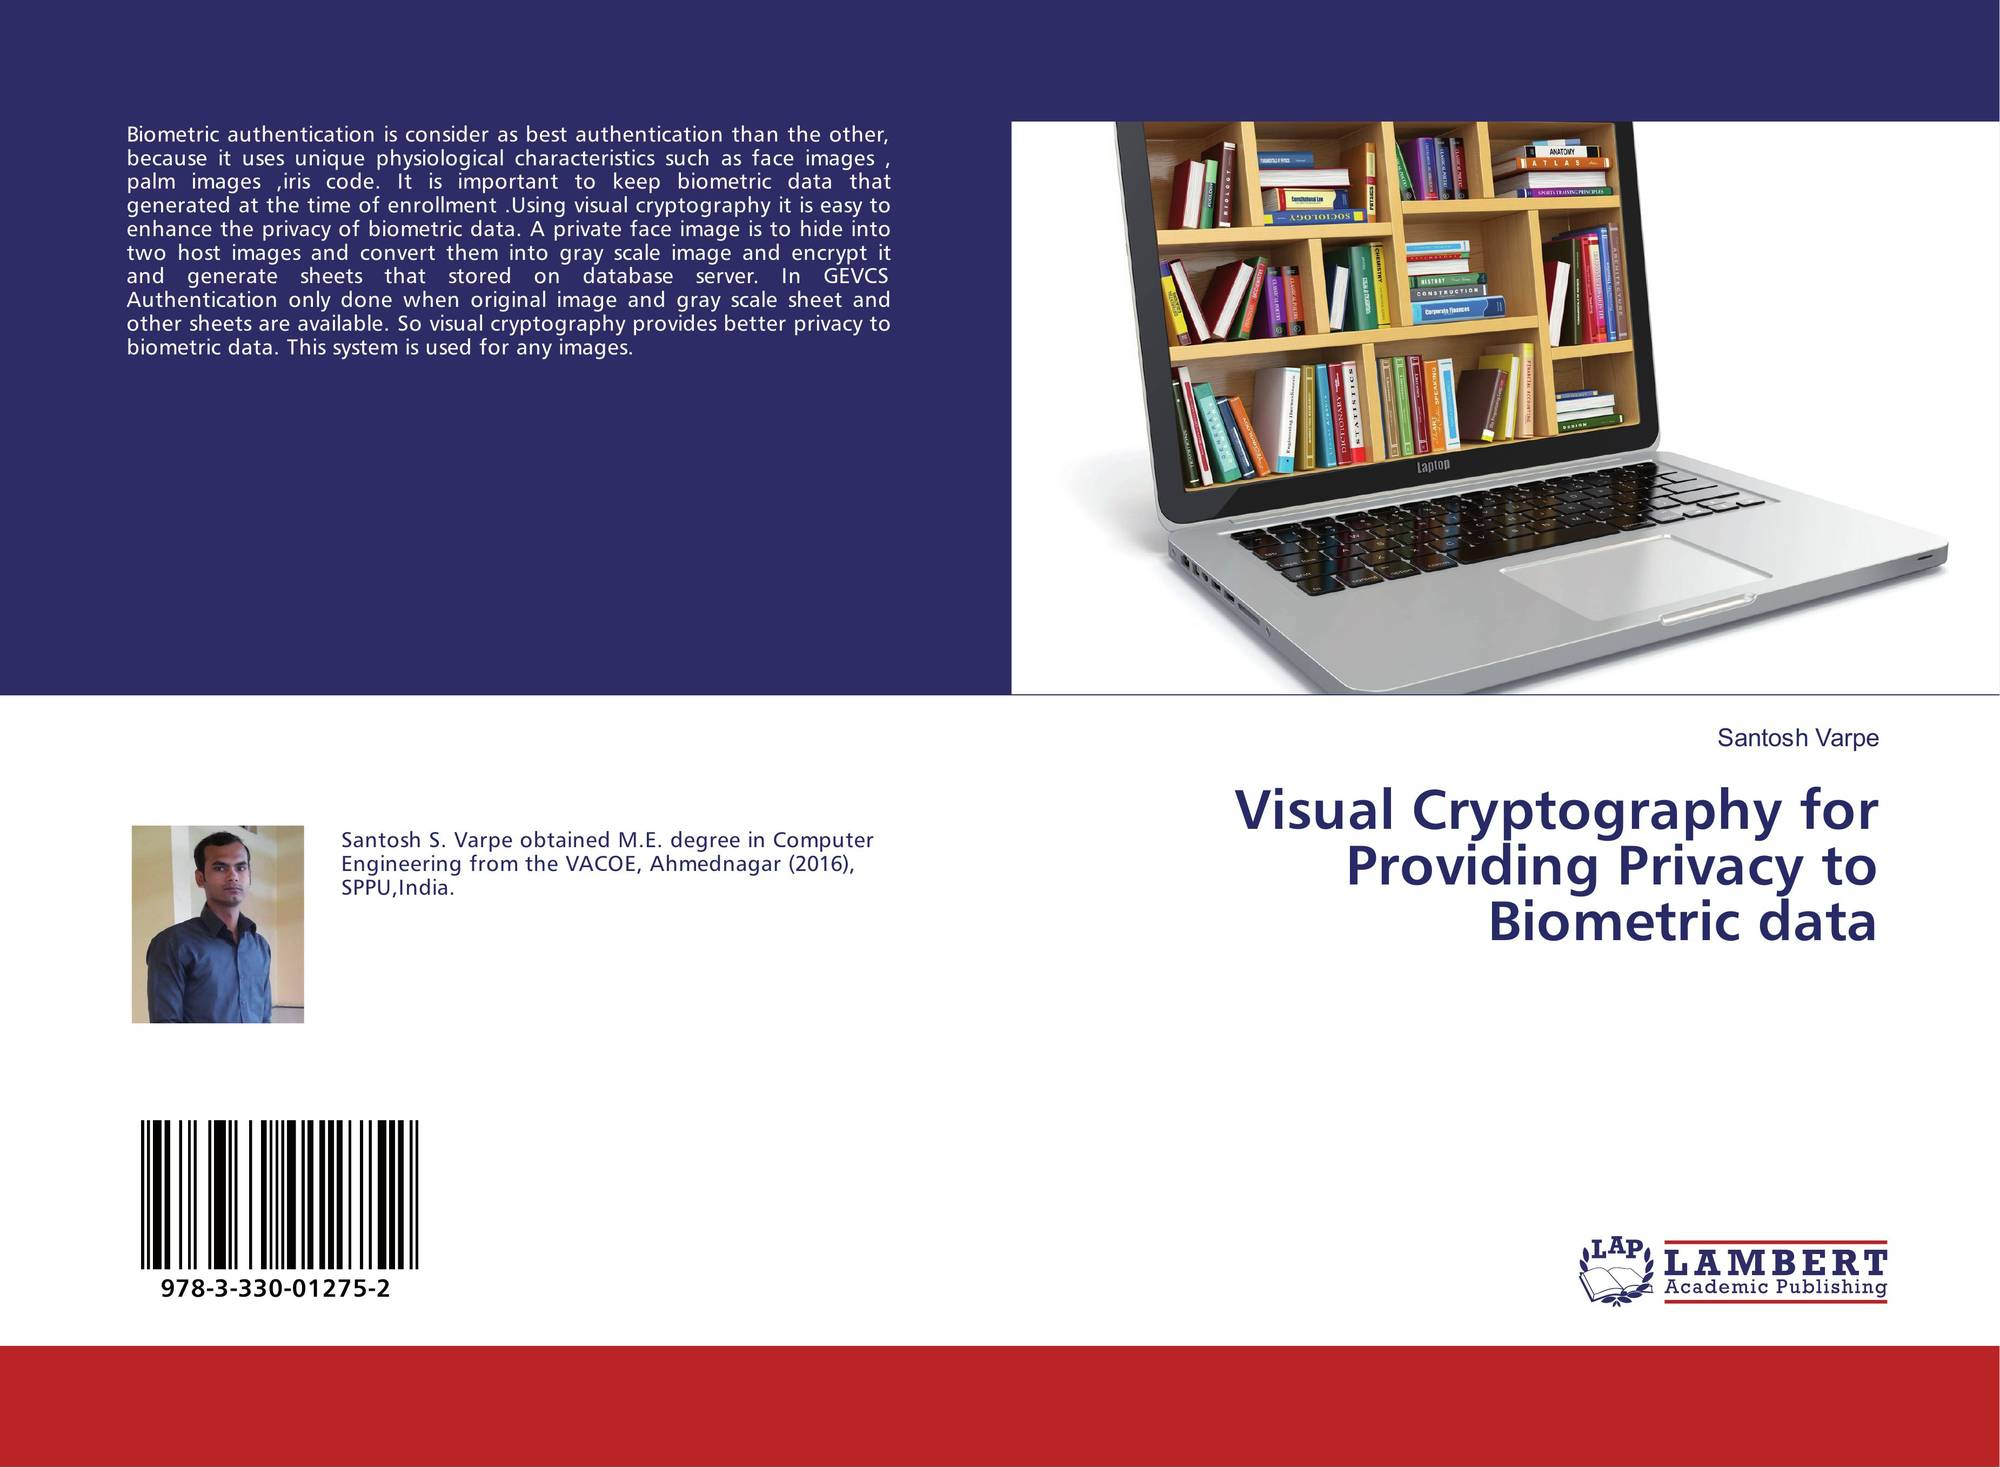 Visual Cryptography for Providing Privacy to Biometric data